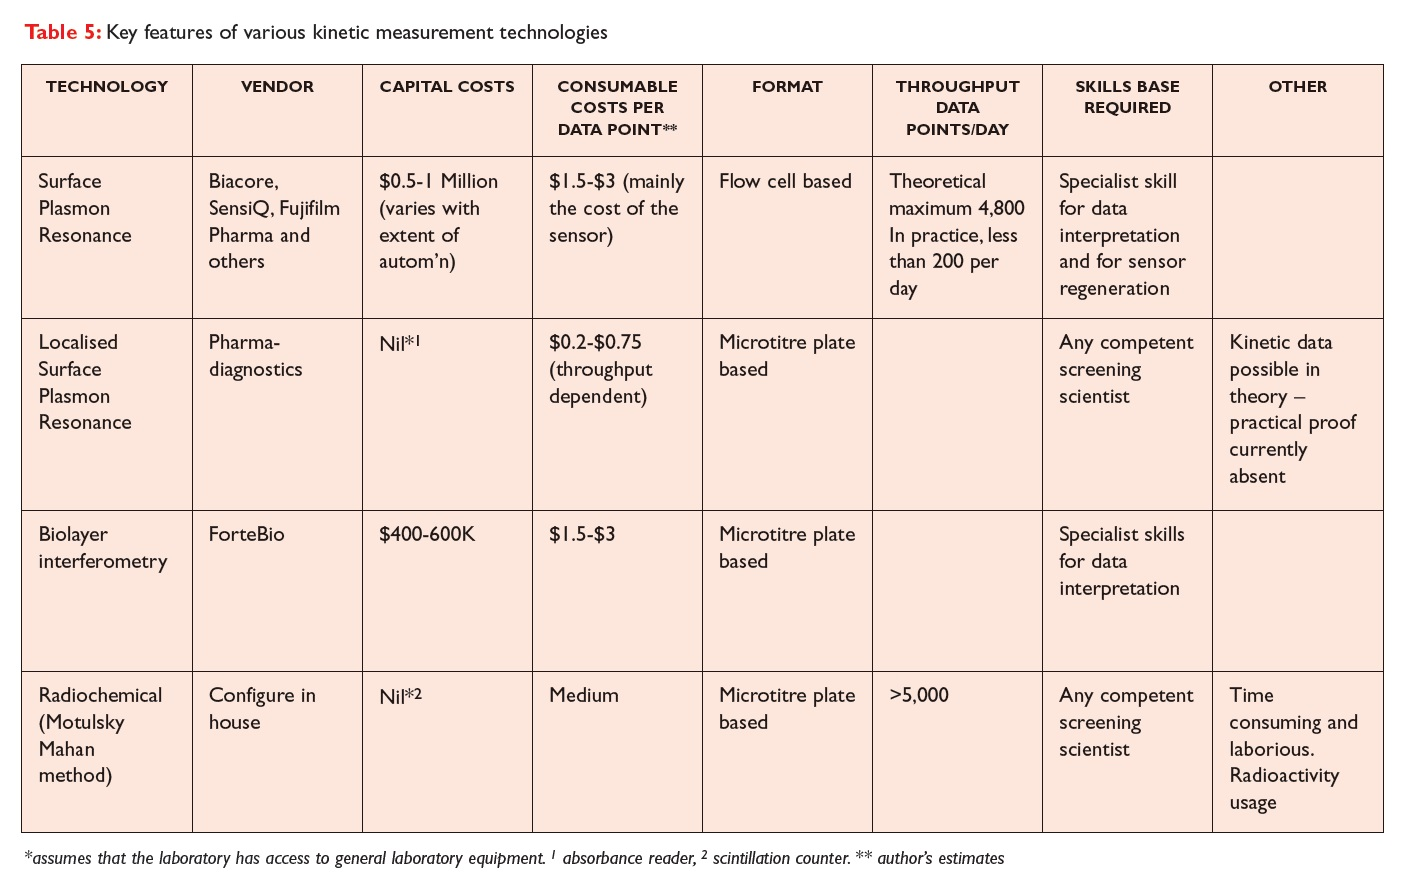 Table 5 Key features of various kinetic measurement technologies